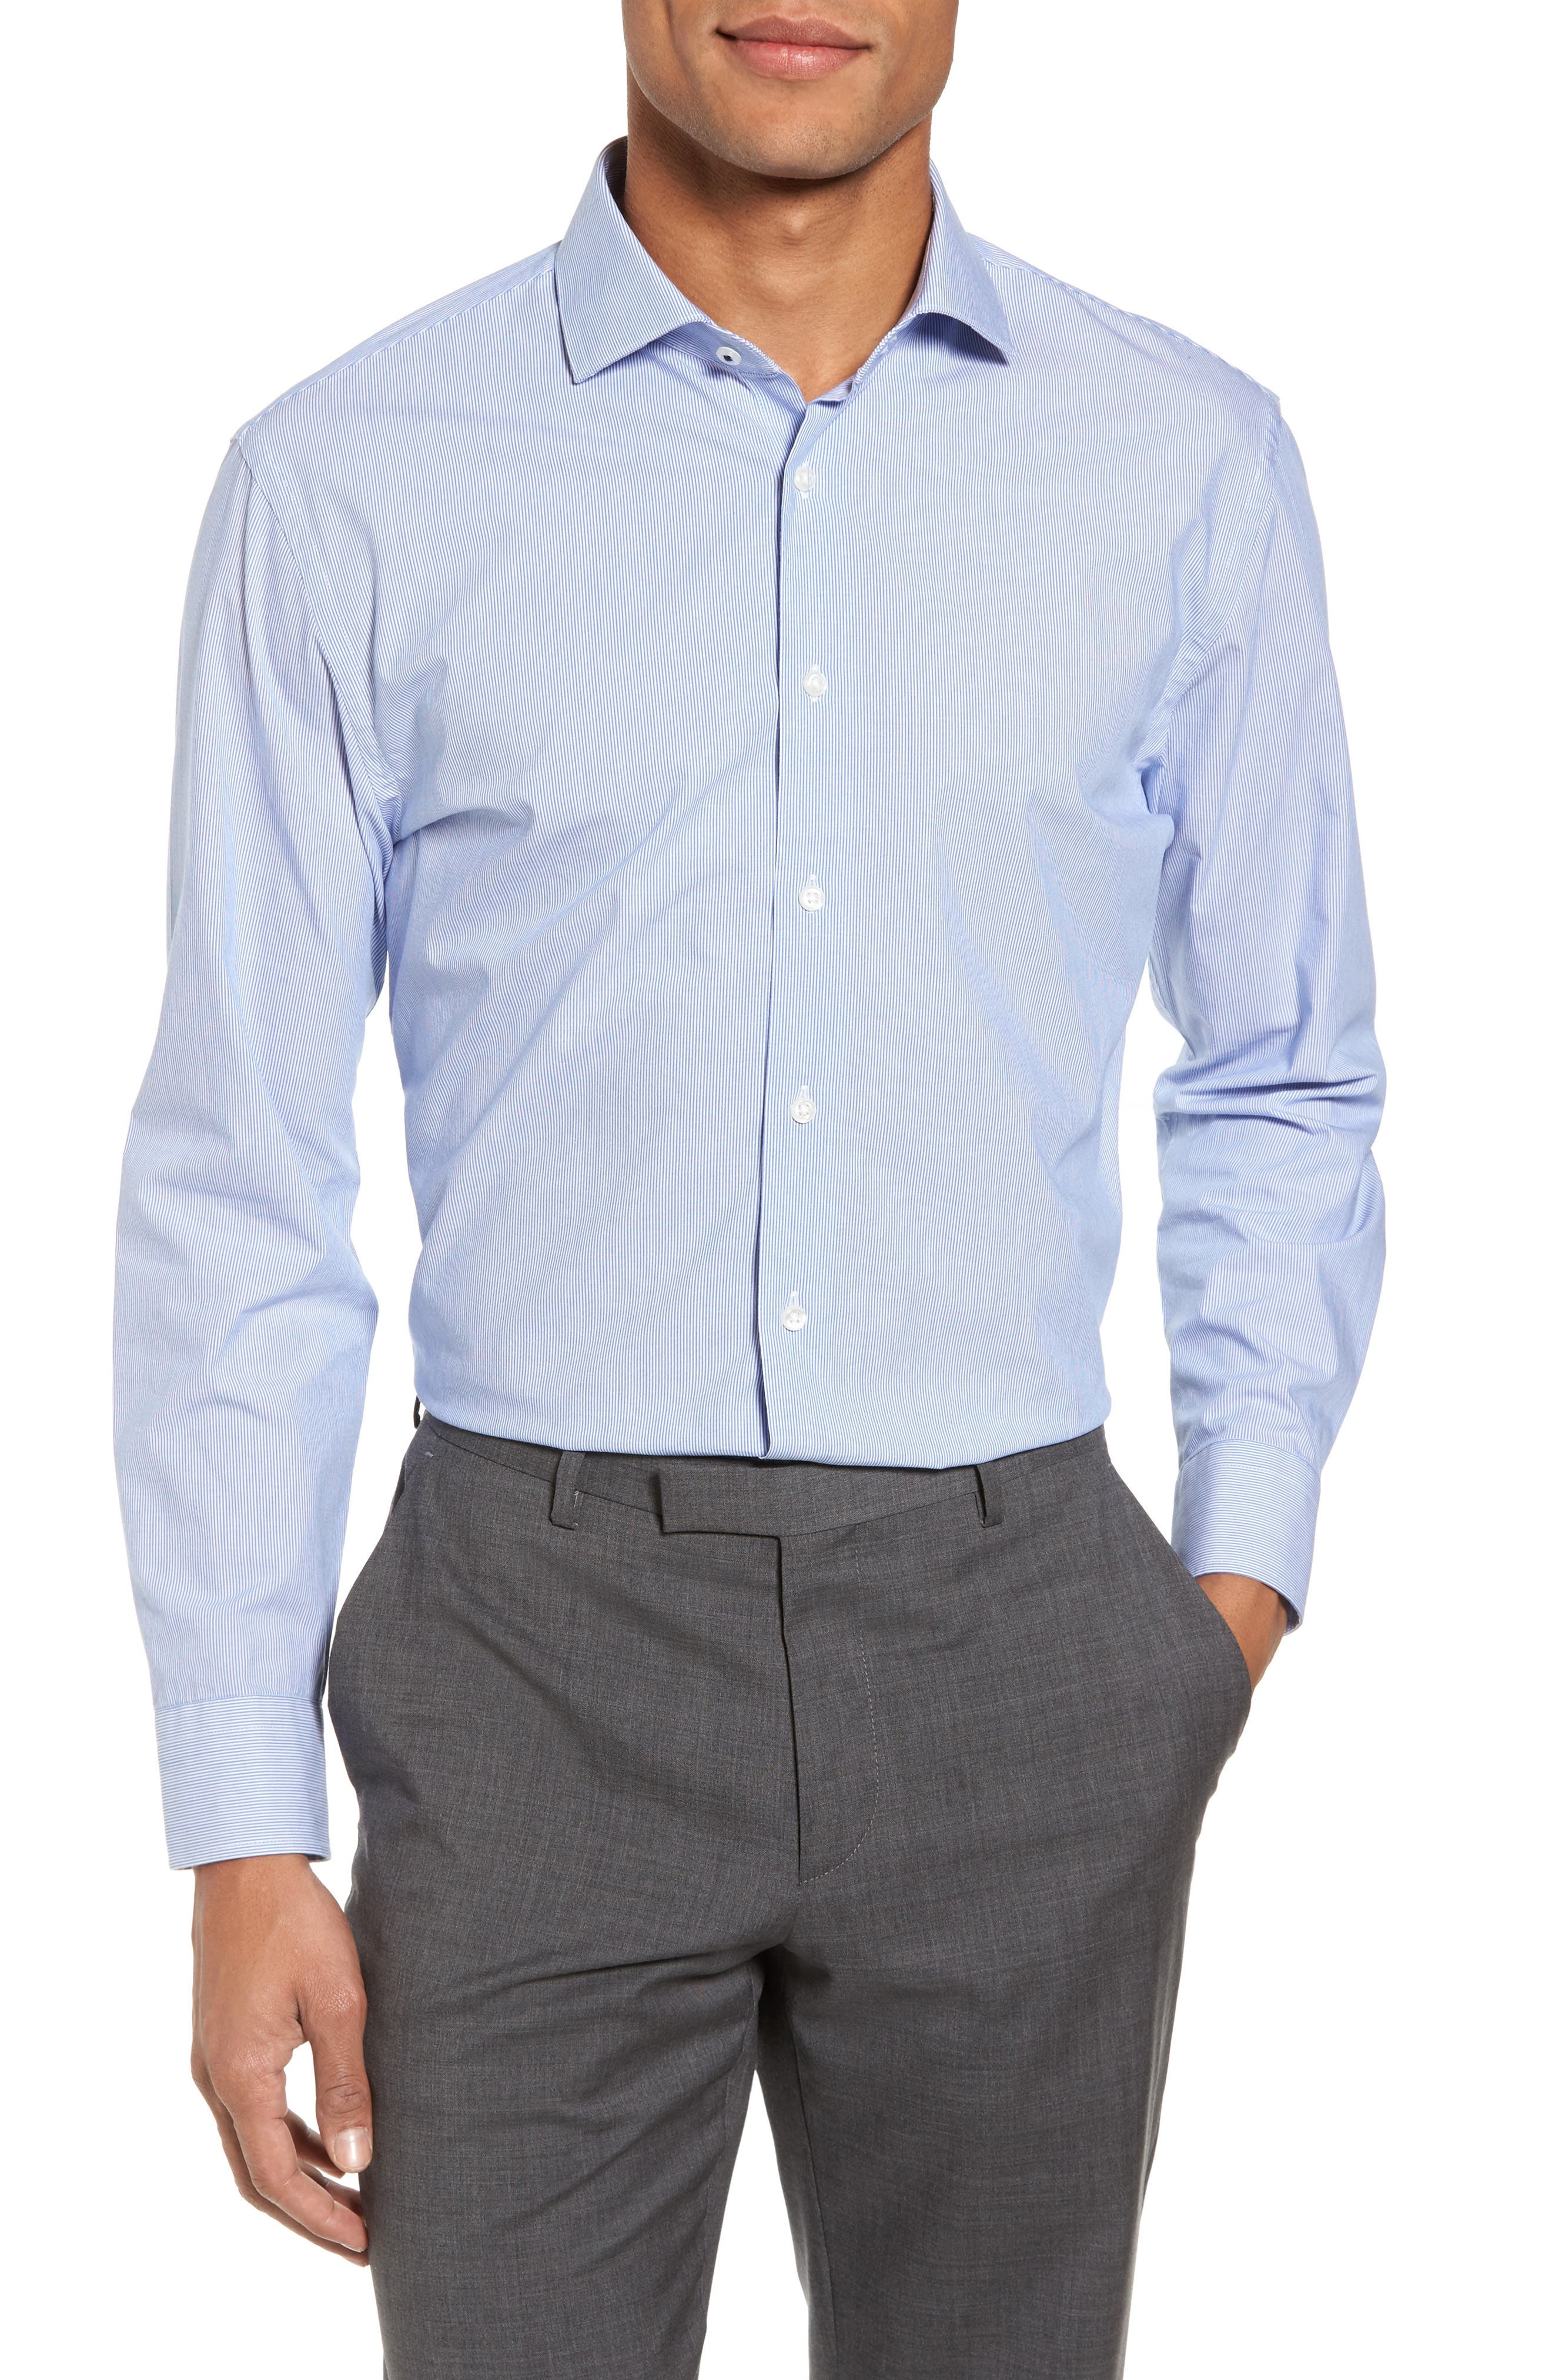 Tech-Smart Trim Fit Stretch Stripe Dress Shirt,                             Main thumbnail 1, color,                             Blue Yonder